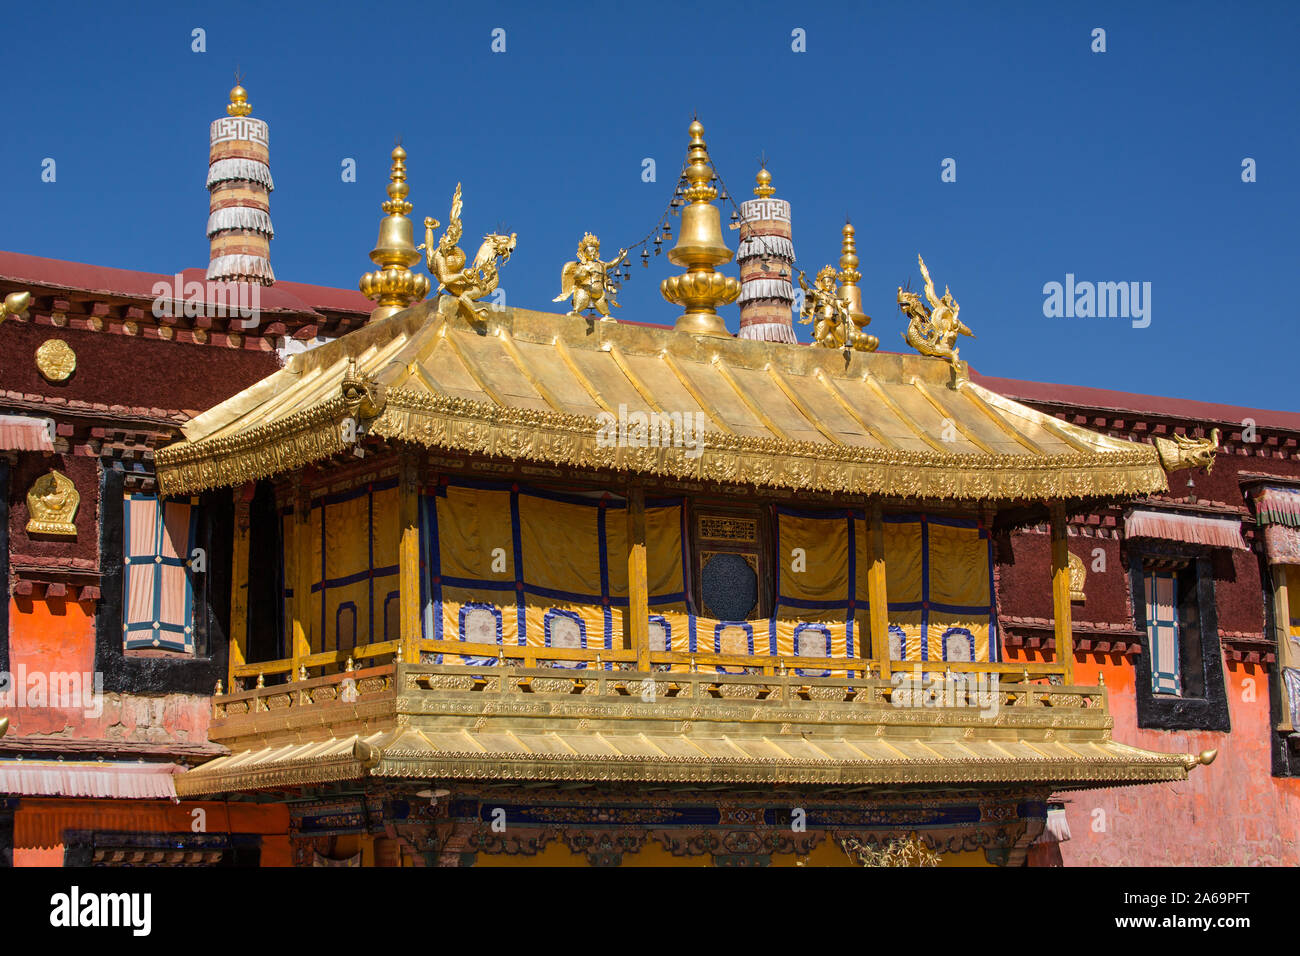 Architectural detail, statues and the gilt roof of the Jokhang Buddhist temple in Lhasa, the holiest temple Tibet.  A UNESCO World Heritage Site. Stock Photo